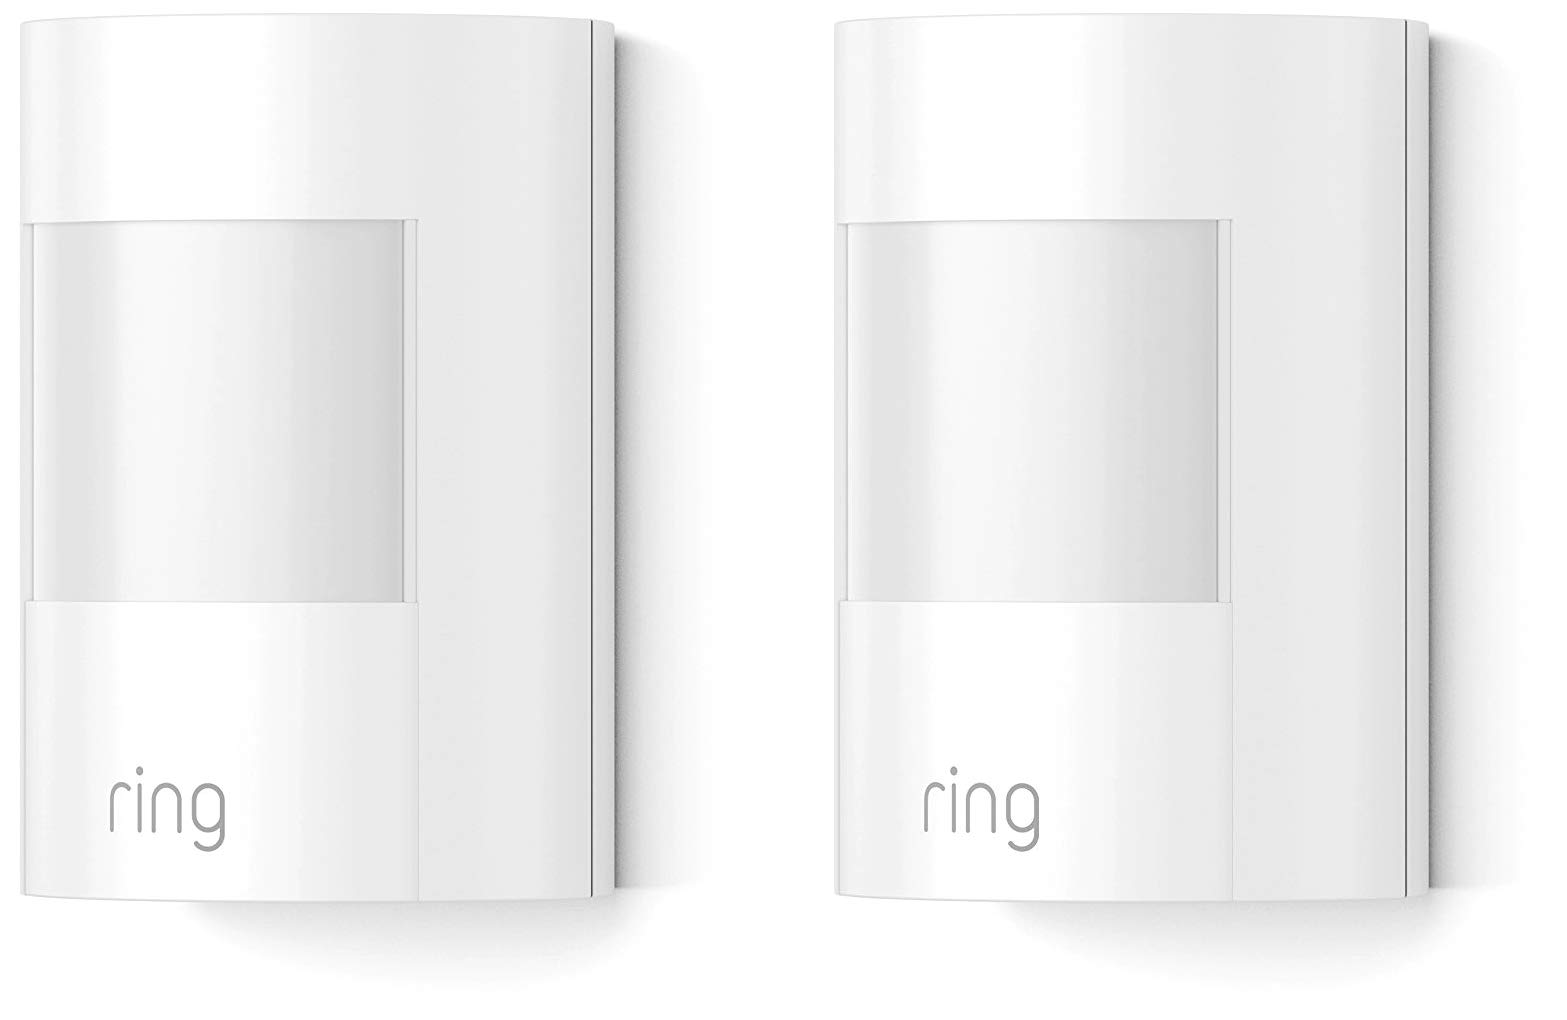 Ring Alarm Motion Detector 2-Pack by Ring